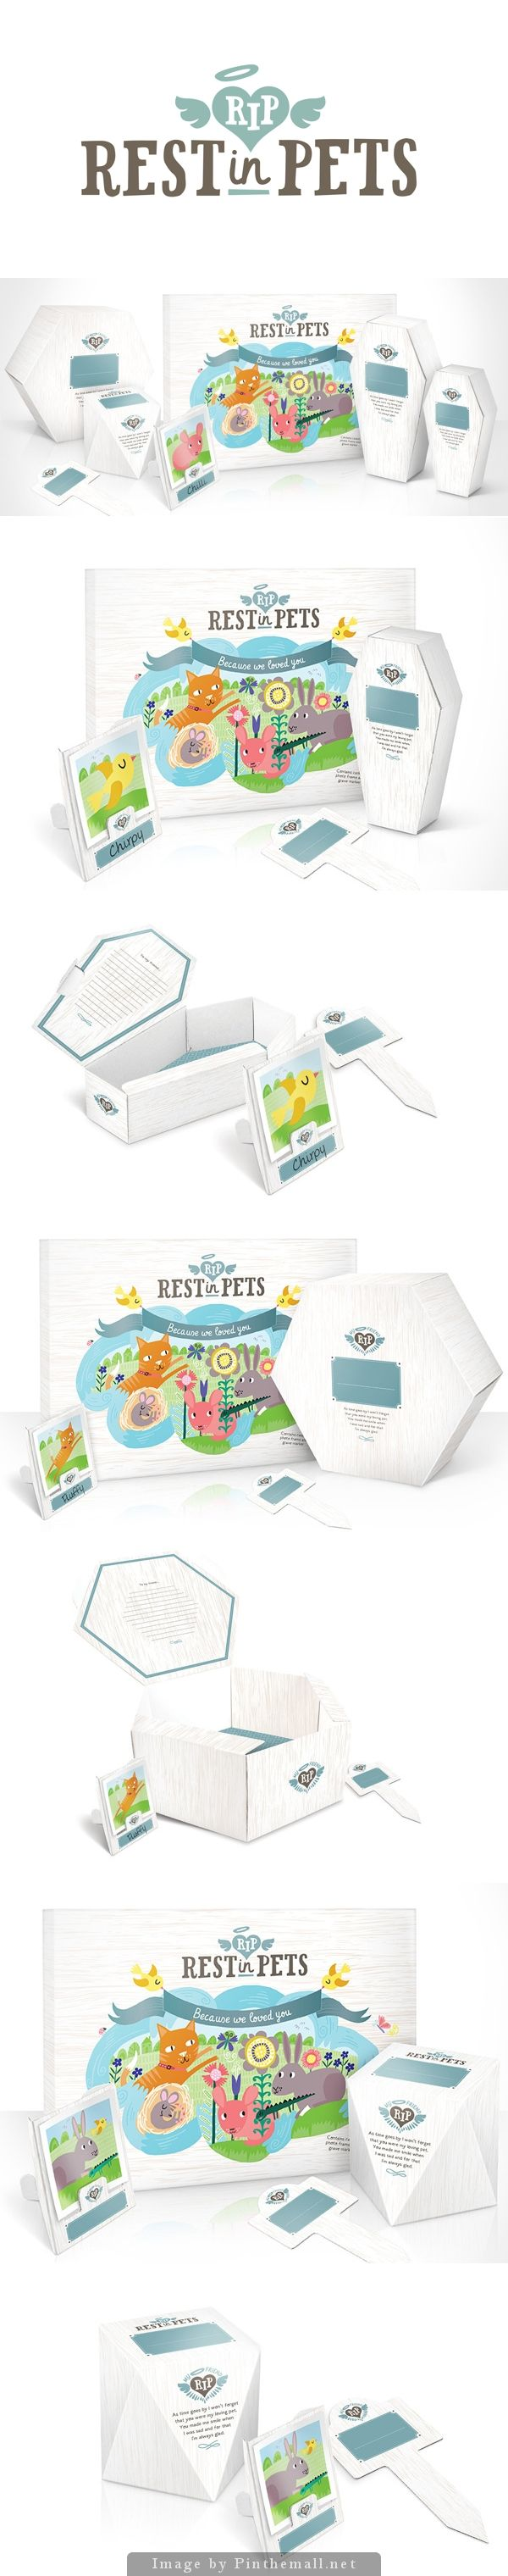 Rest In Pets: Biodegradable cardboard pet caskets by Mat Bogust made from #packaging